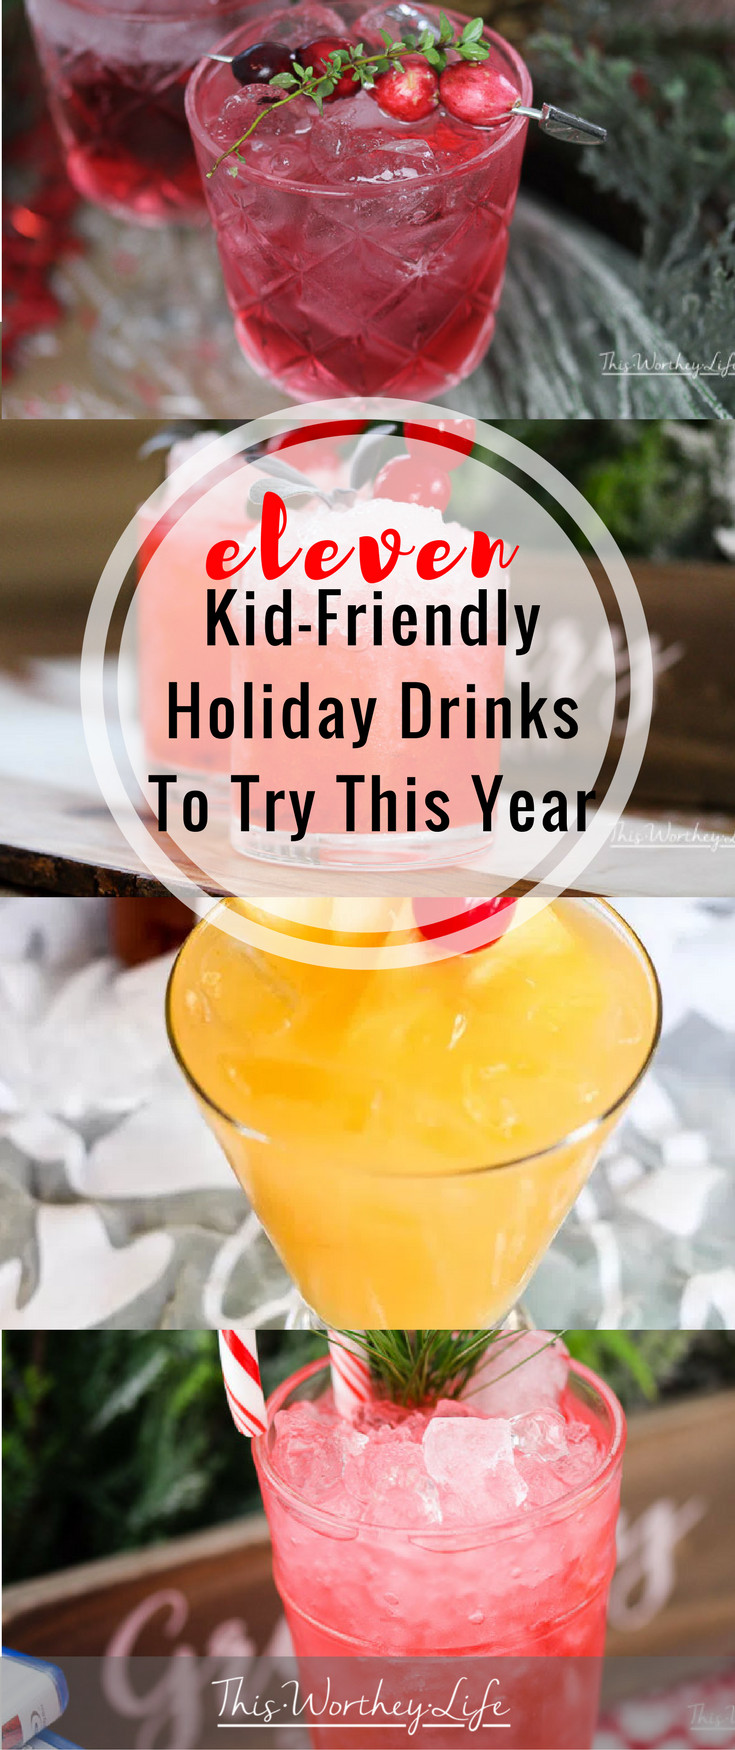 Fun Thanksgiving Drinks  11 Kid Friendly Holiday Drinks To Try This Year This